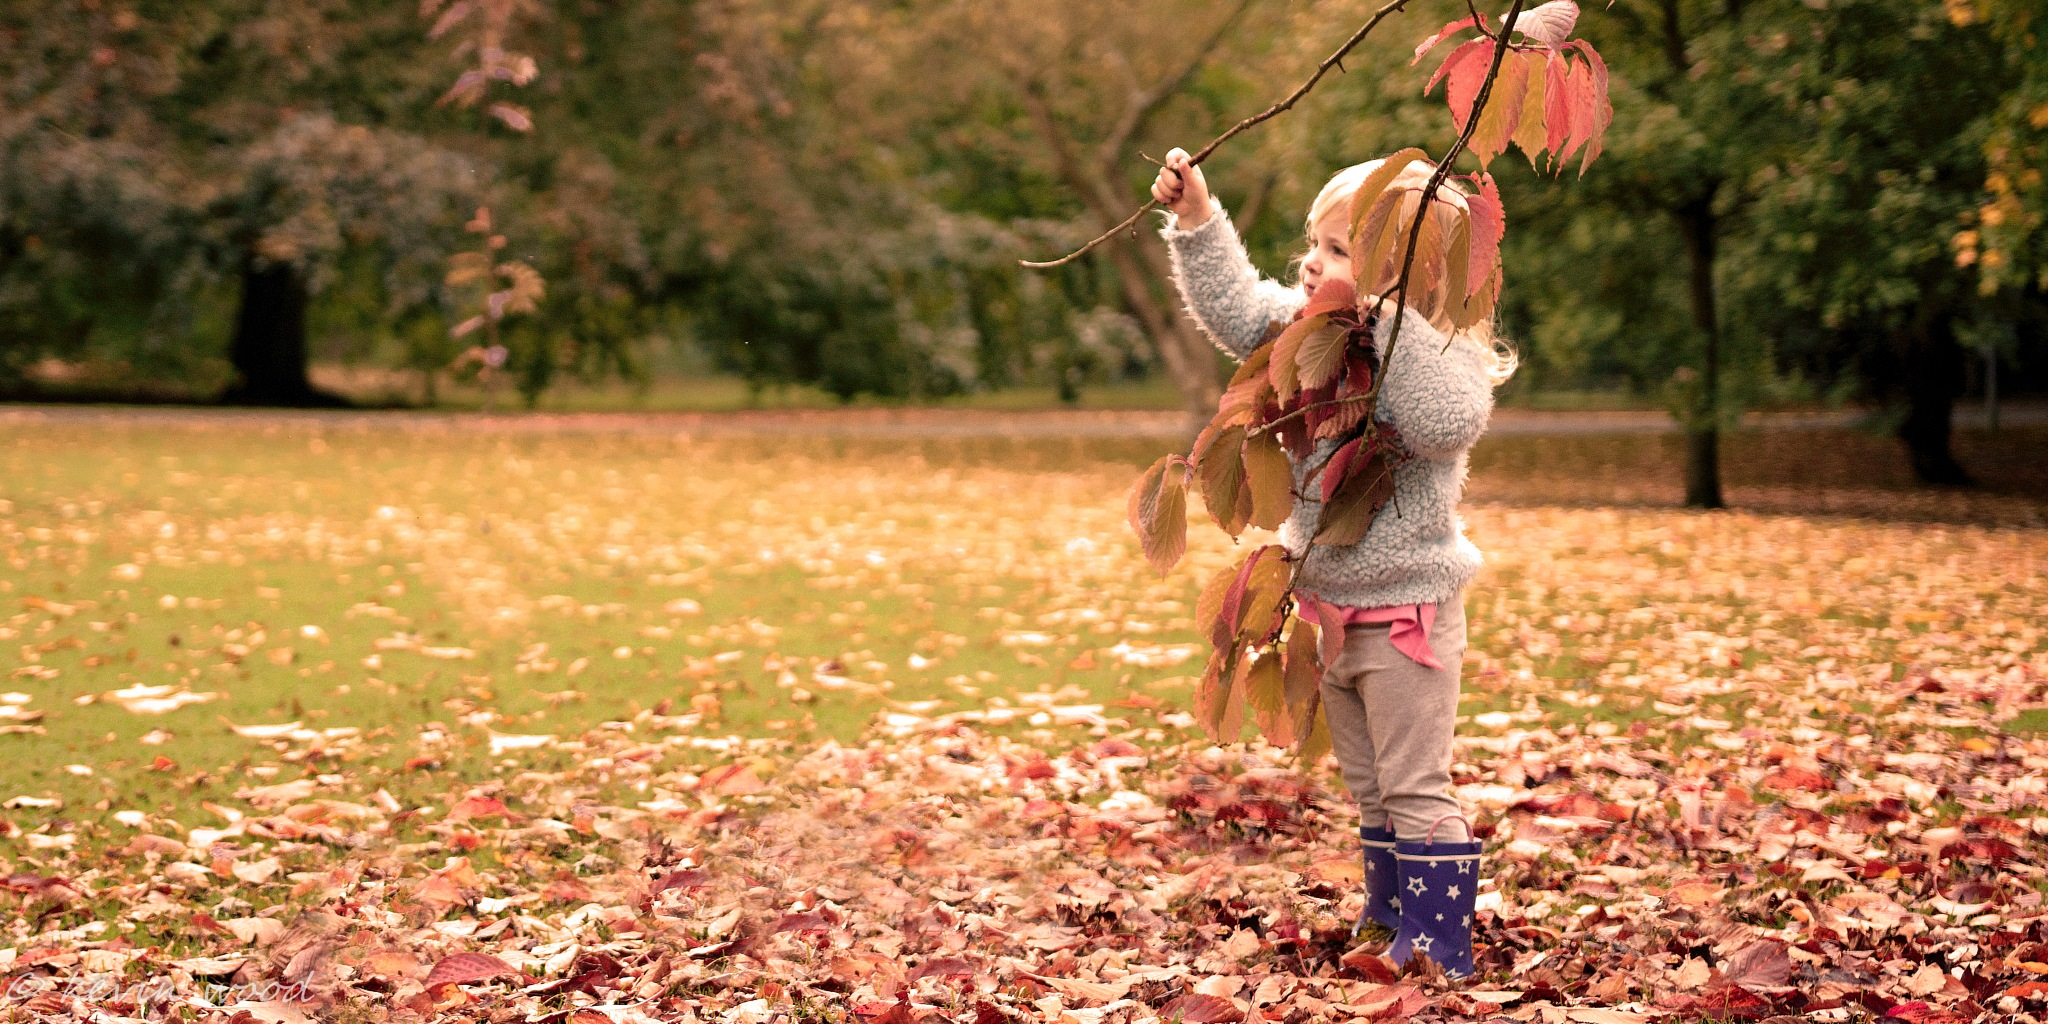 The joy of Autumn. by kevin.wood.359126